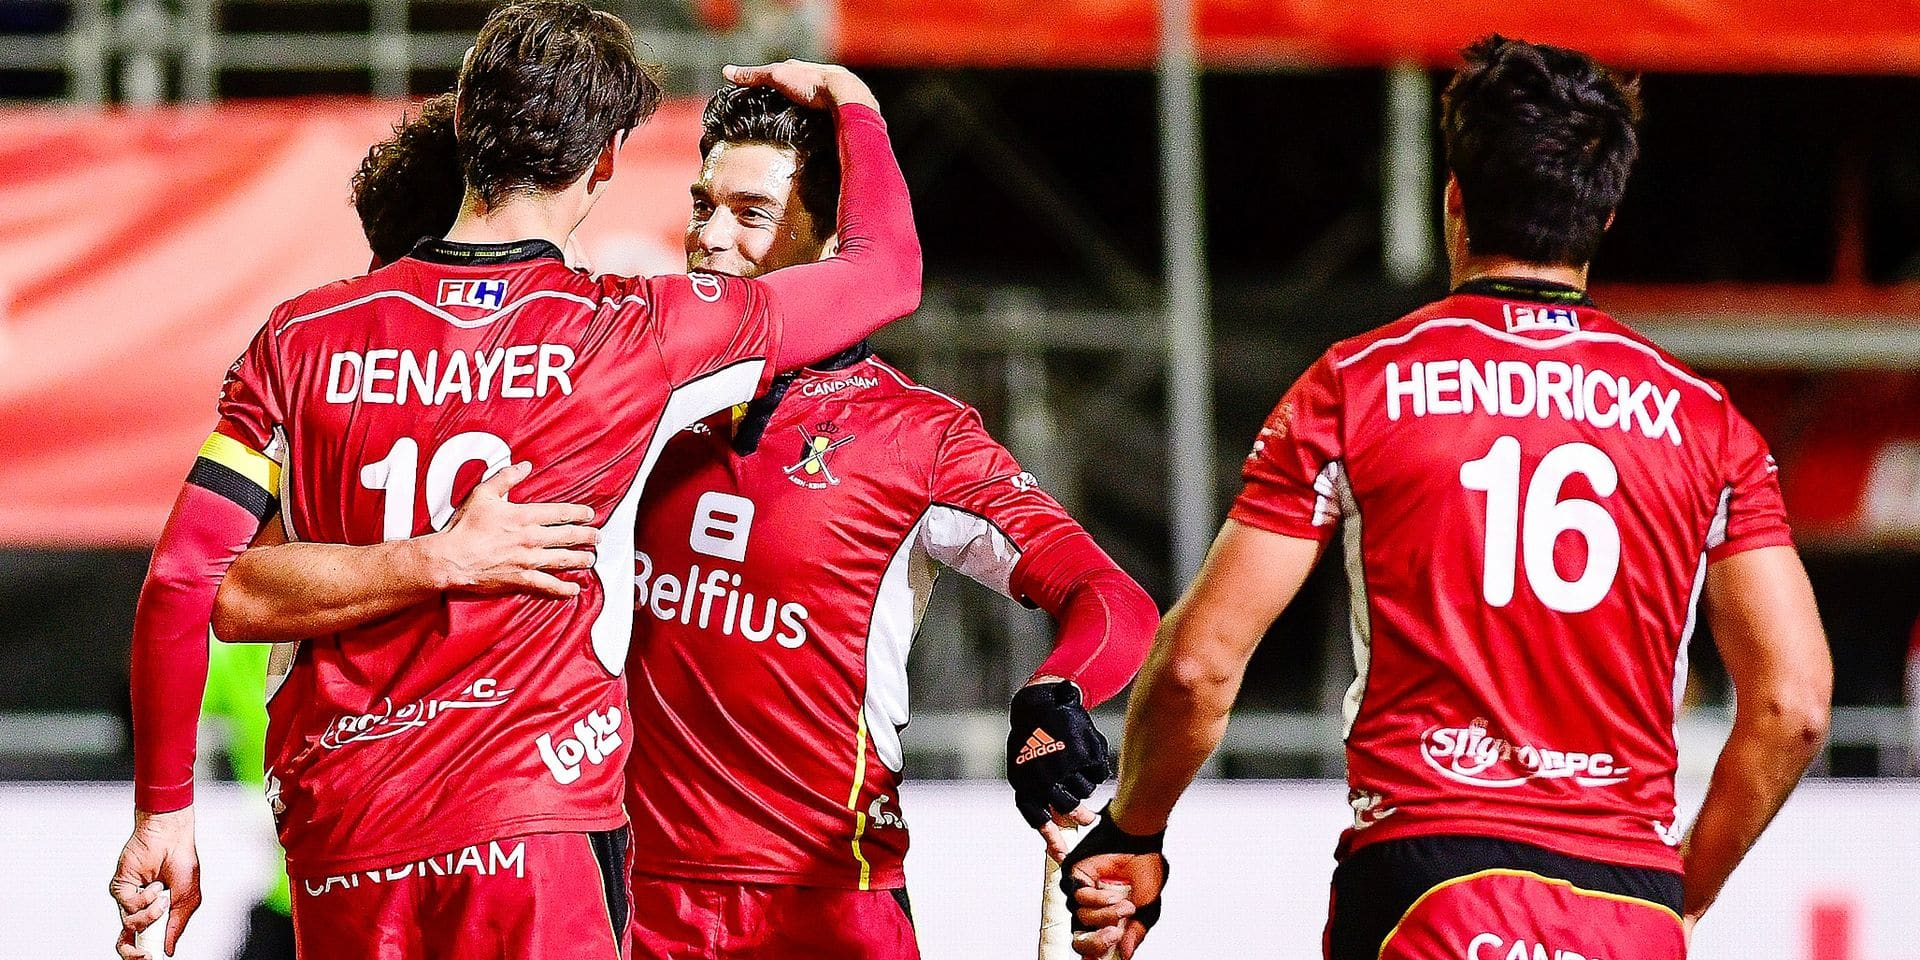 Belgium's Felix Denayer and Belgium's Alexander Hendrickx celebrate after scoring during a field hockey game between Belgium's national team Red Lions and Spain, Wednesday 10 April 2019 in Brussels, game 5/16 of the men's FIH Pro League competition. BELGA PHOTO LAURIE DIEFFEMBACQ